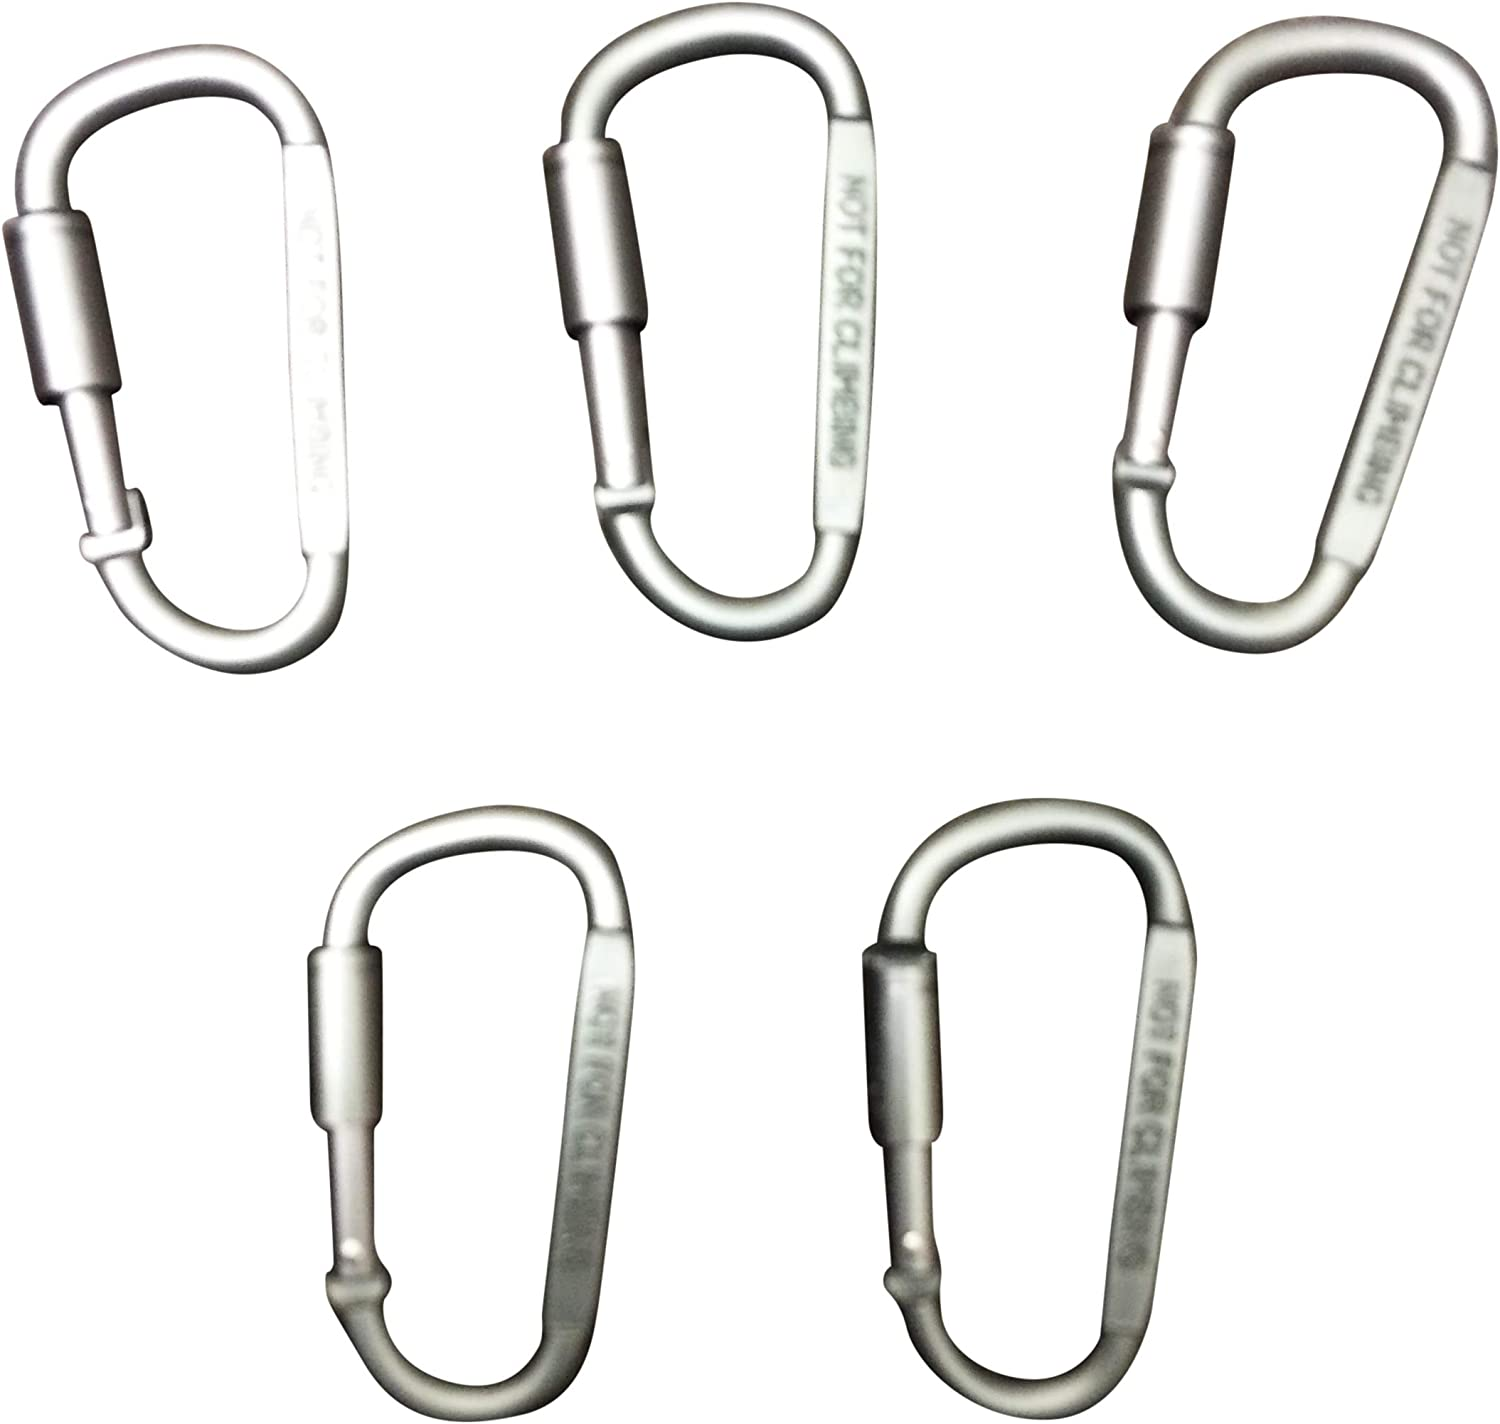 Durable Strong and Lightweight Set of 5, Hiking 3 Spring Link for Camping Screw Lock Hooks GearHill Aluminum Carabiner Clip D Ring Shape Traveling